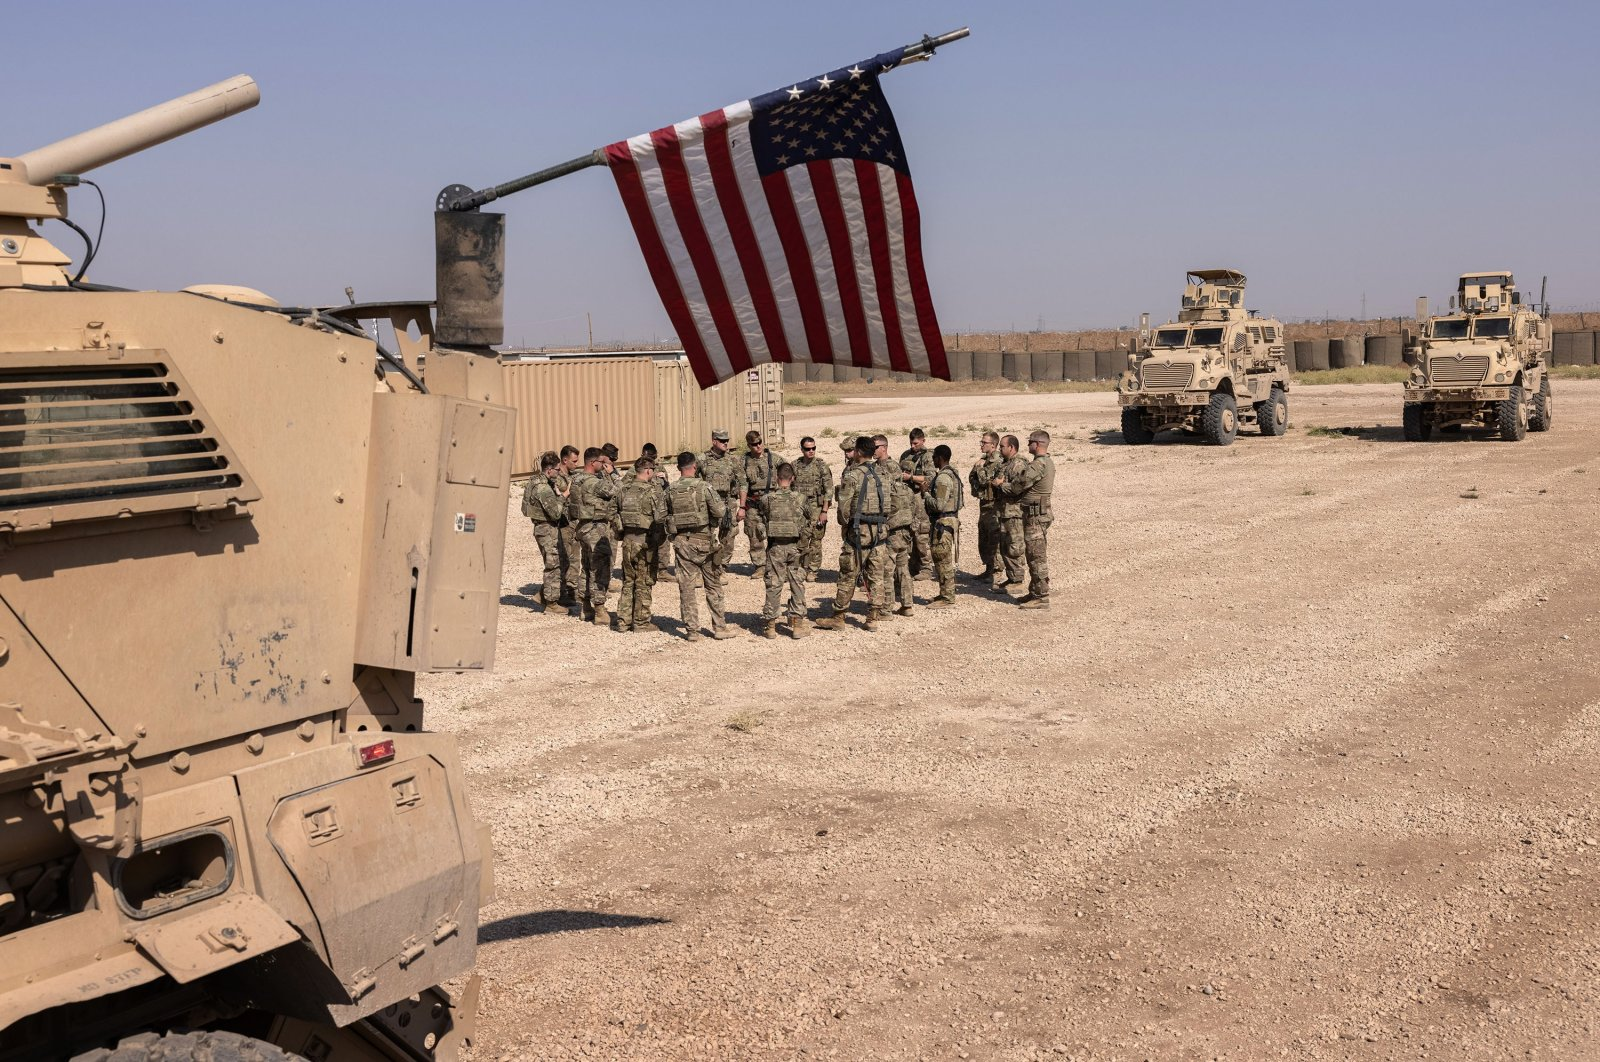 U.S. soldiers prepare to go out on patrol in coordination with YPG terrorists from a remote combat outpost in northeastern Syria, May 25, 2021. (Getty Images)